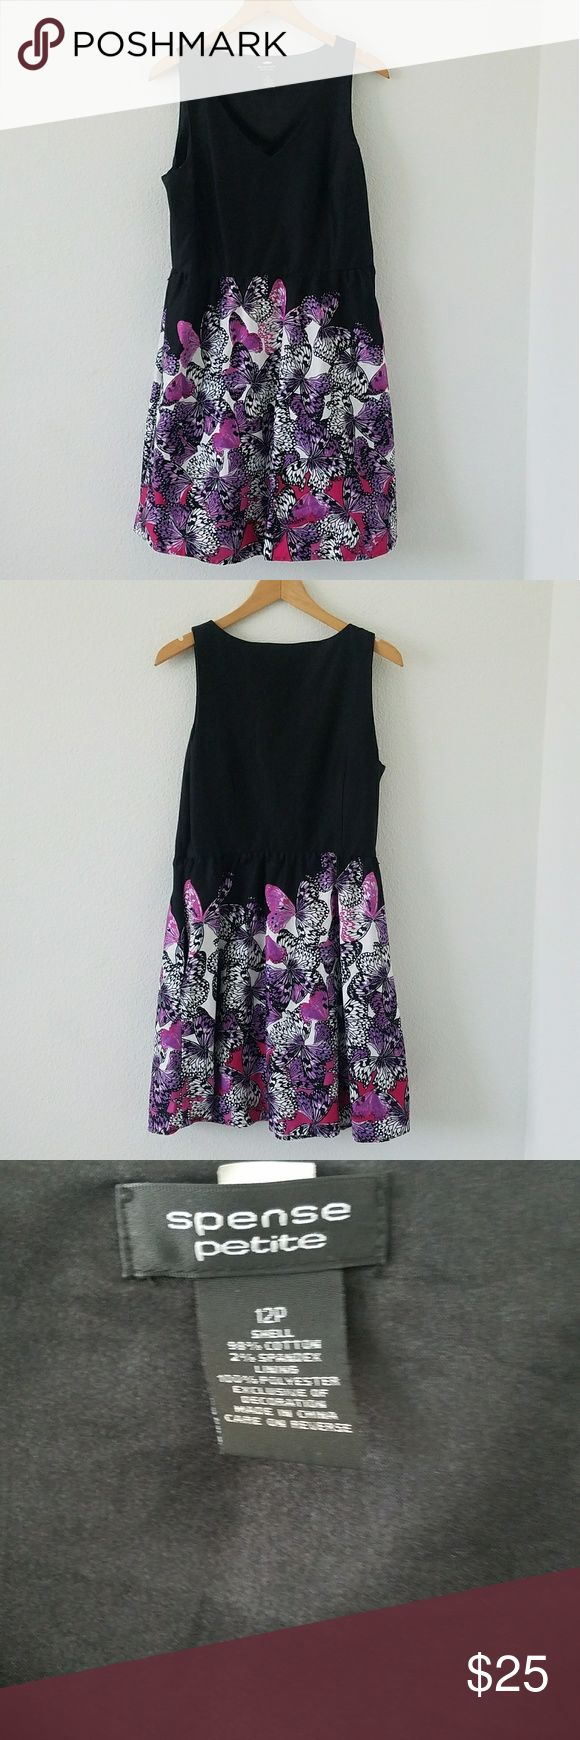 Gorgeous butterfly dress. This dress is cute for going out to a formal event. It complements a beautiful butterfly pattern that goes around the the bottom of dress. The bottom of the dress flares out beautifully. It also has two pockets on the sides.  The neckline is a v-neck.  There is a zipper on the side and belt loops on the waist.  Belt not included. I'm 5'3 so the length of the dress hits a little above the knee.  The dress is an overall good condition.  98% cotton 2% spandex size 12…